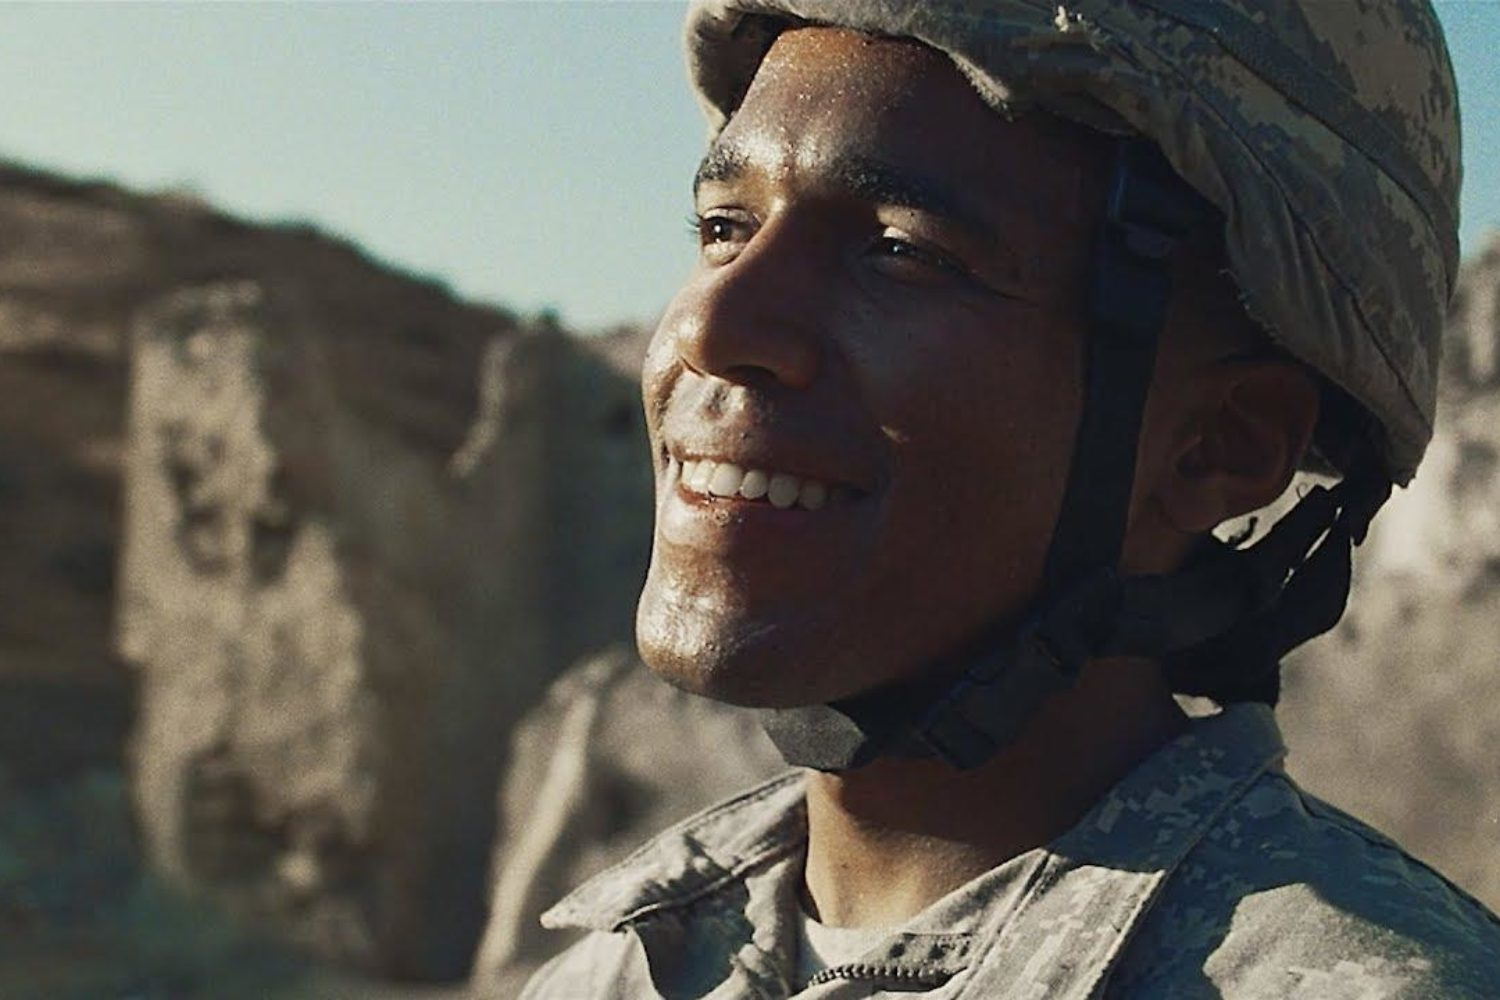 Benjamin Booker undergoes military training in the video for 'Believe'